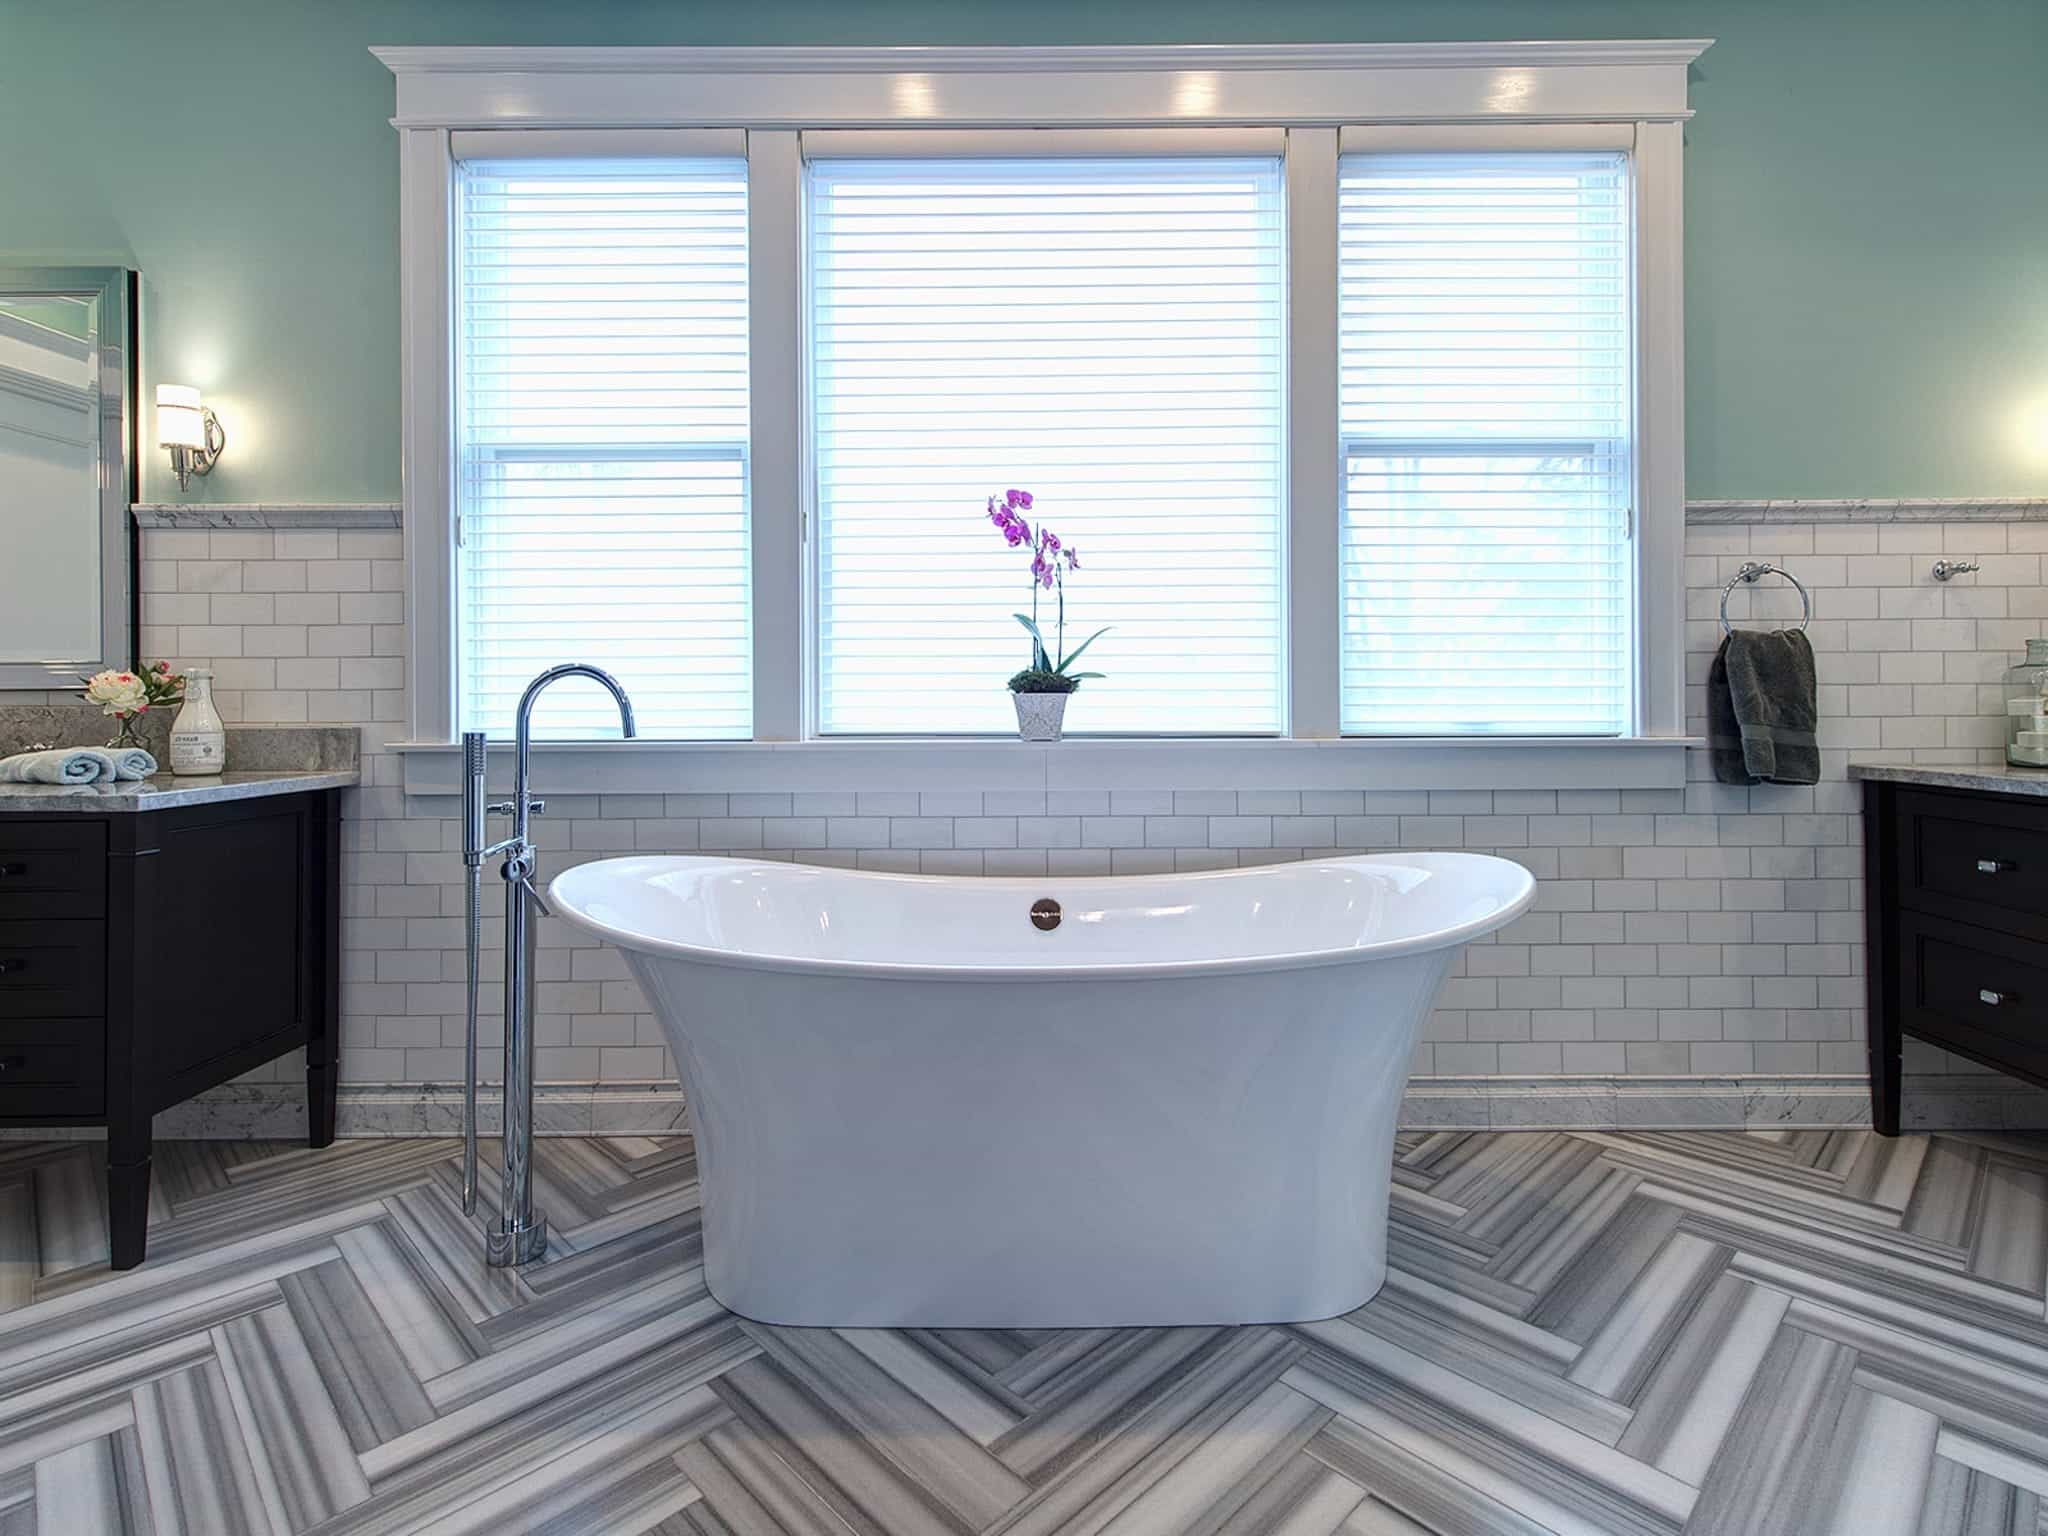 Contemporary Blue Bathroom With Herringbone Floor (Image 5 of 20)